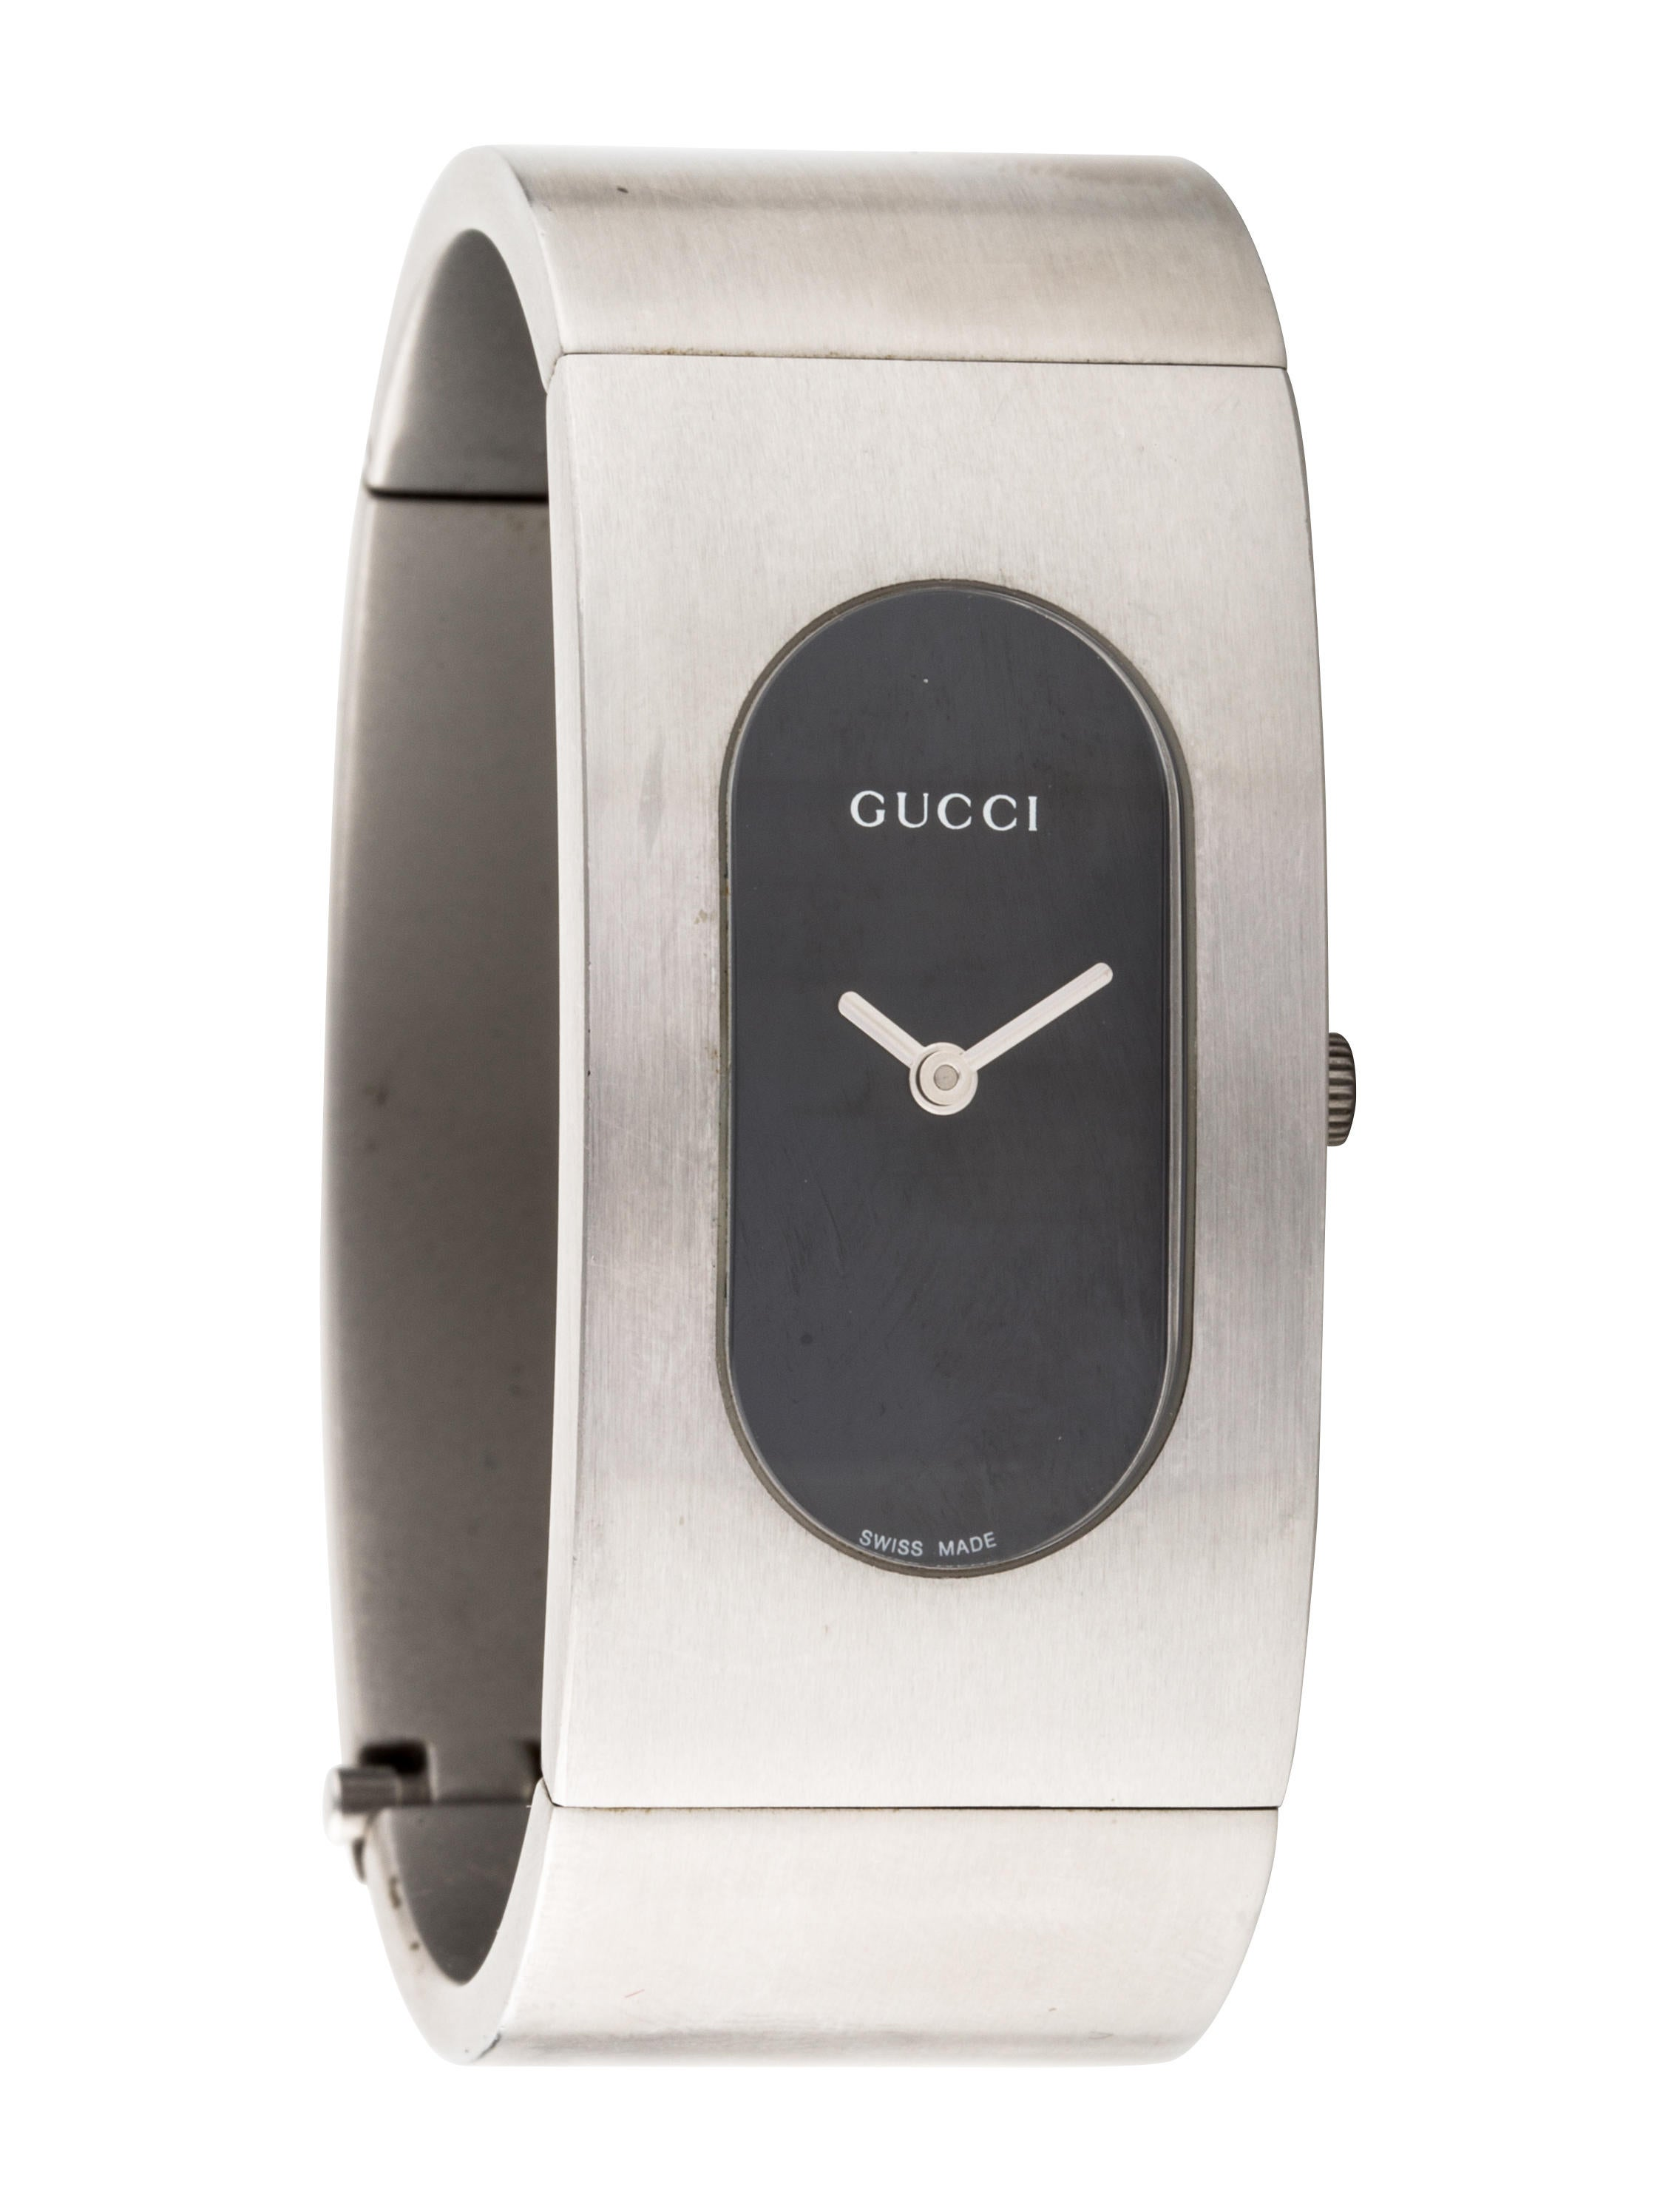 dd86a08e623 Gucci 2400 Series Watch - Bracelet - GUC170618